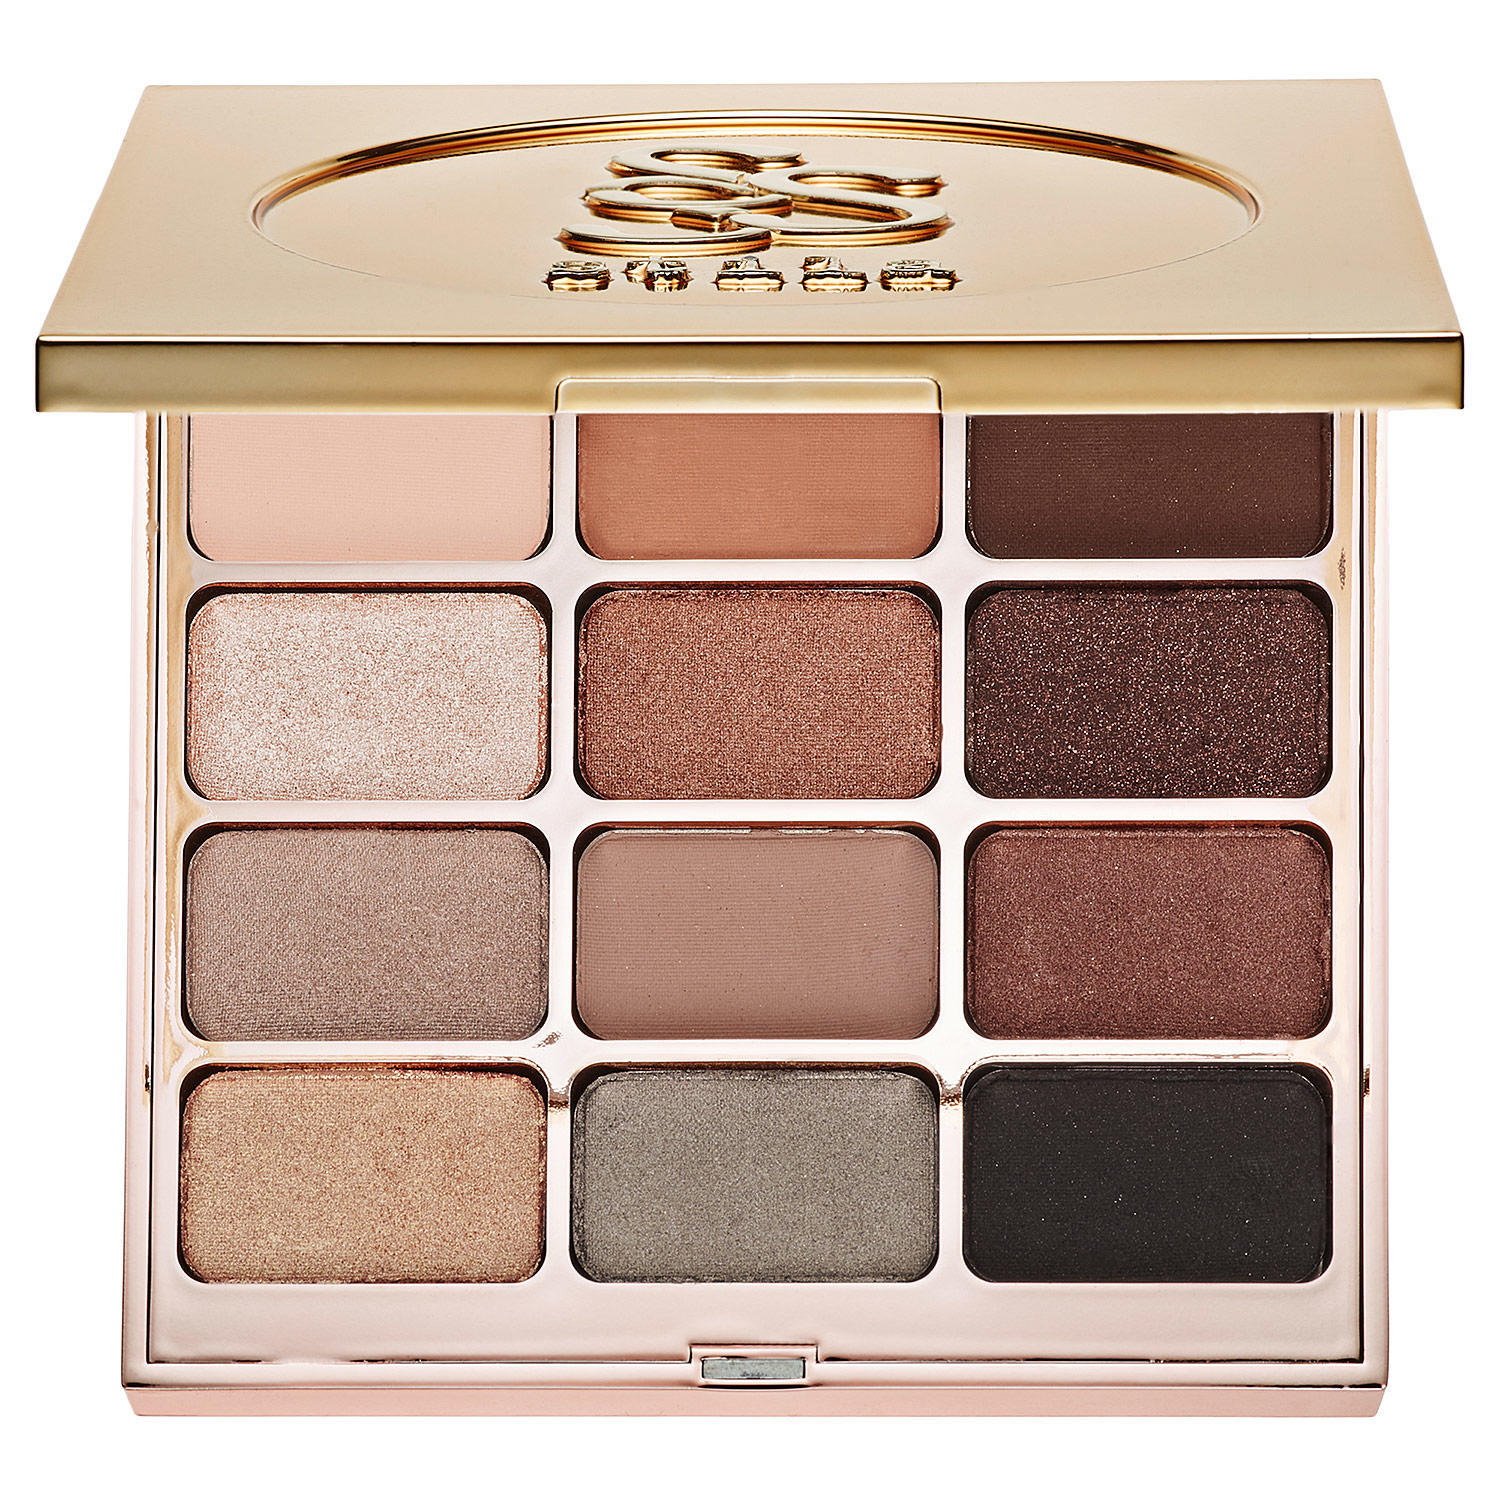 2nd Chance Stila Eyes Are The Window Eyeshadow Palette Soul